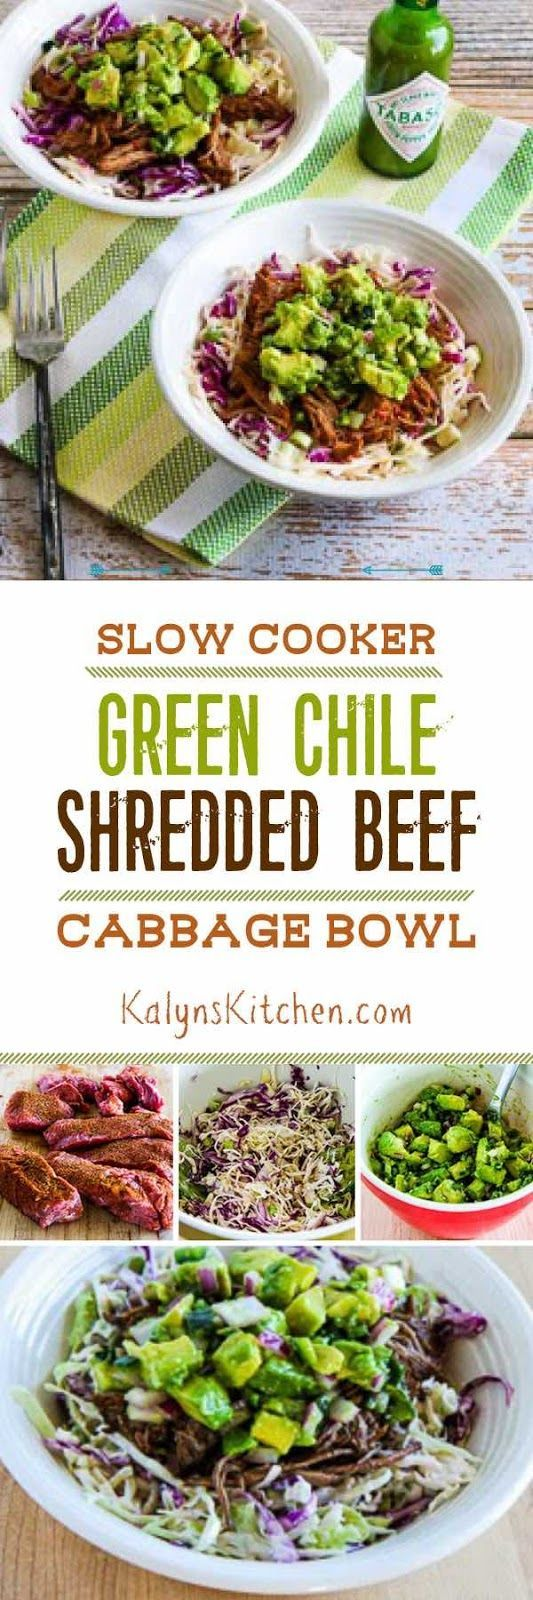 this Slow Cooker Green Chile Shredded Beef Cabbage Bowl with Avocado ...